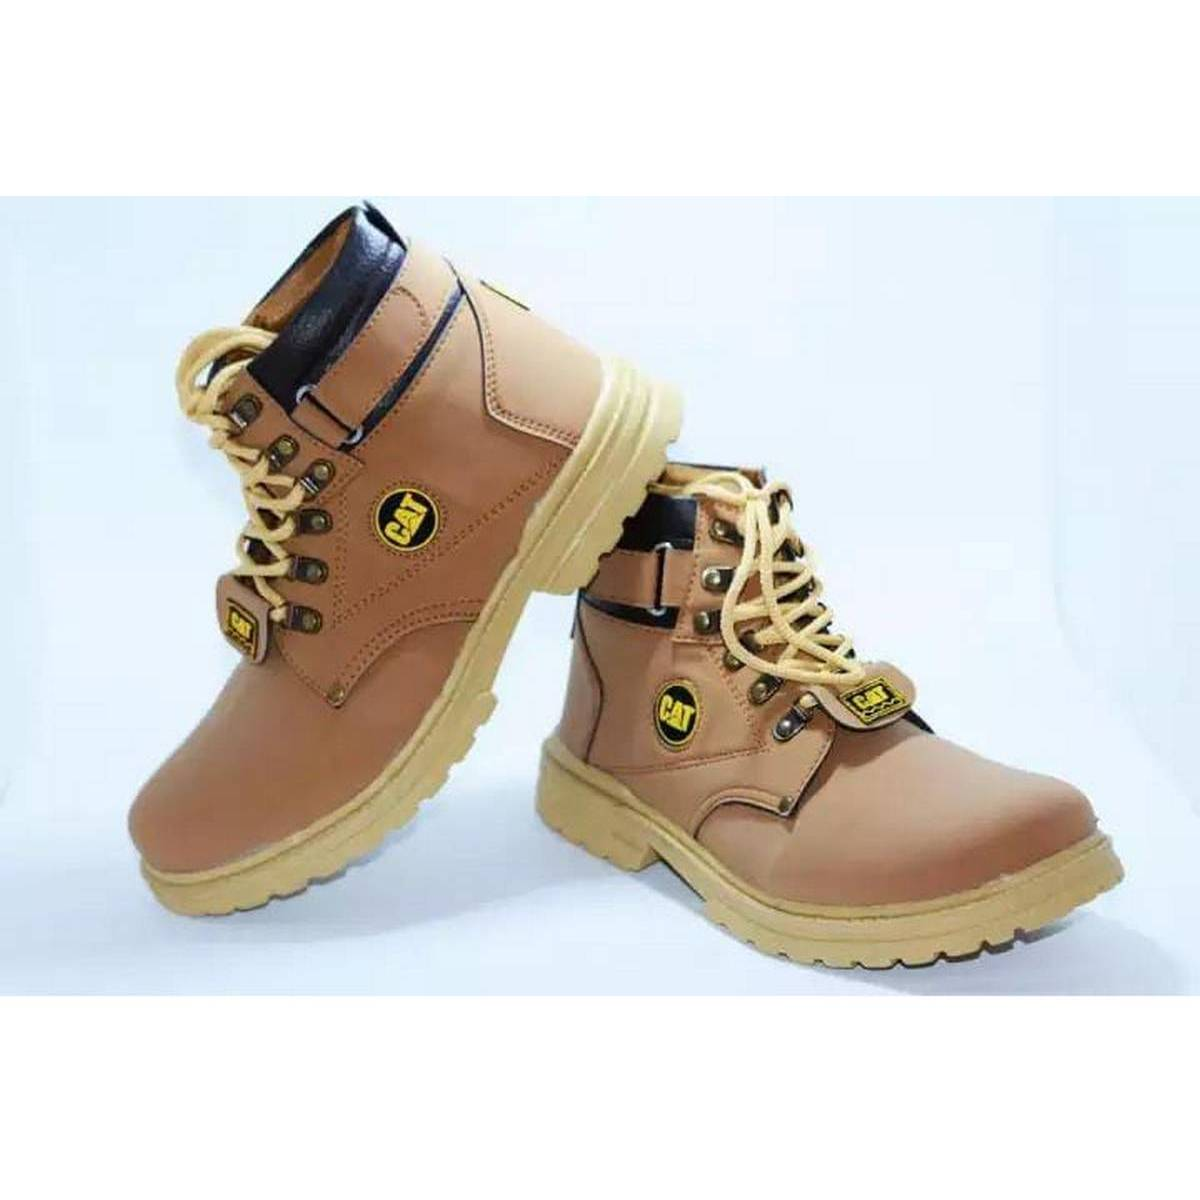 fashion high ankle boots whole sale rate only 999